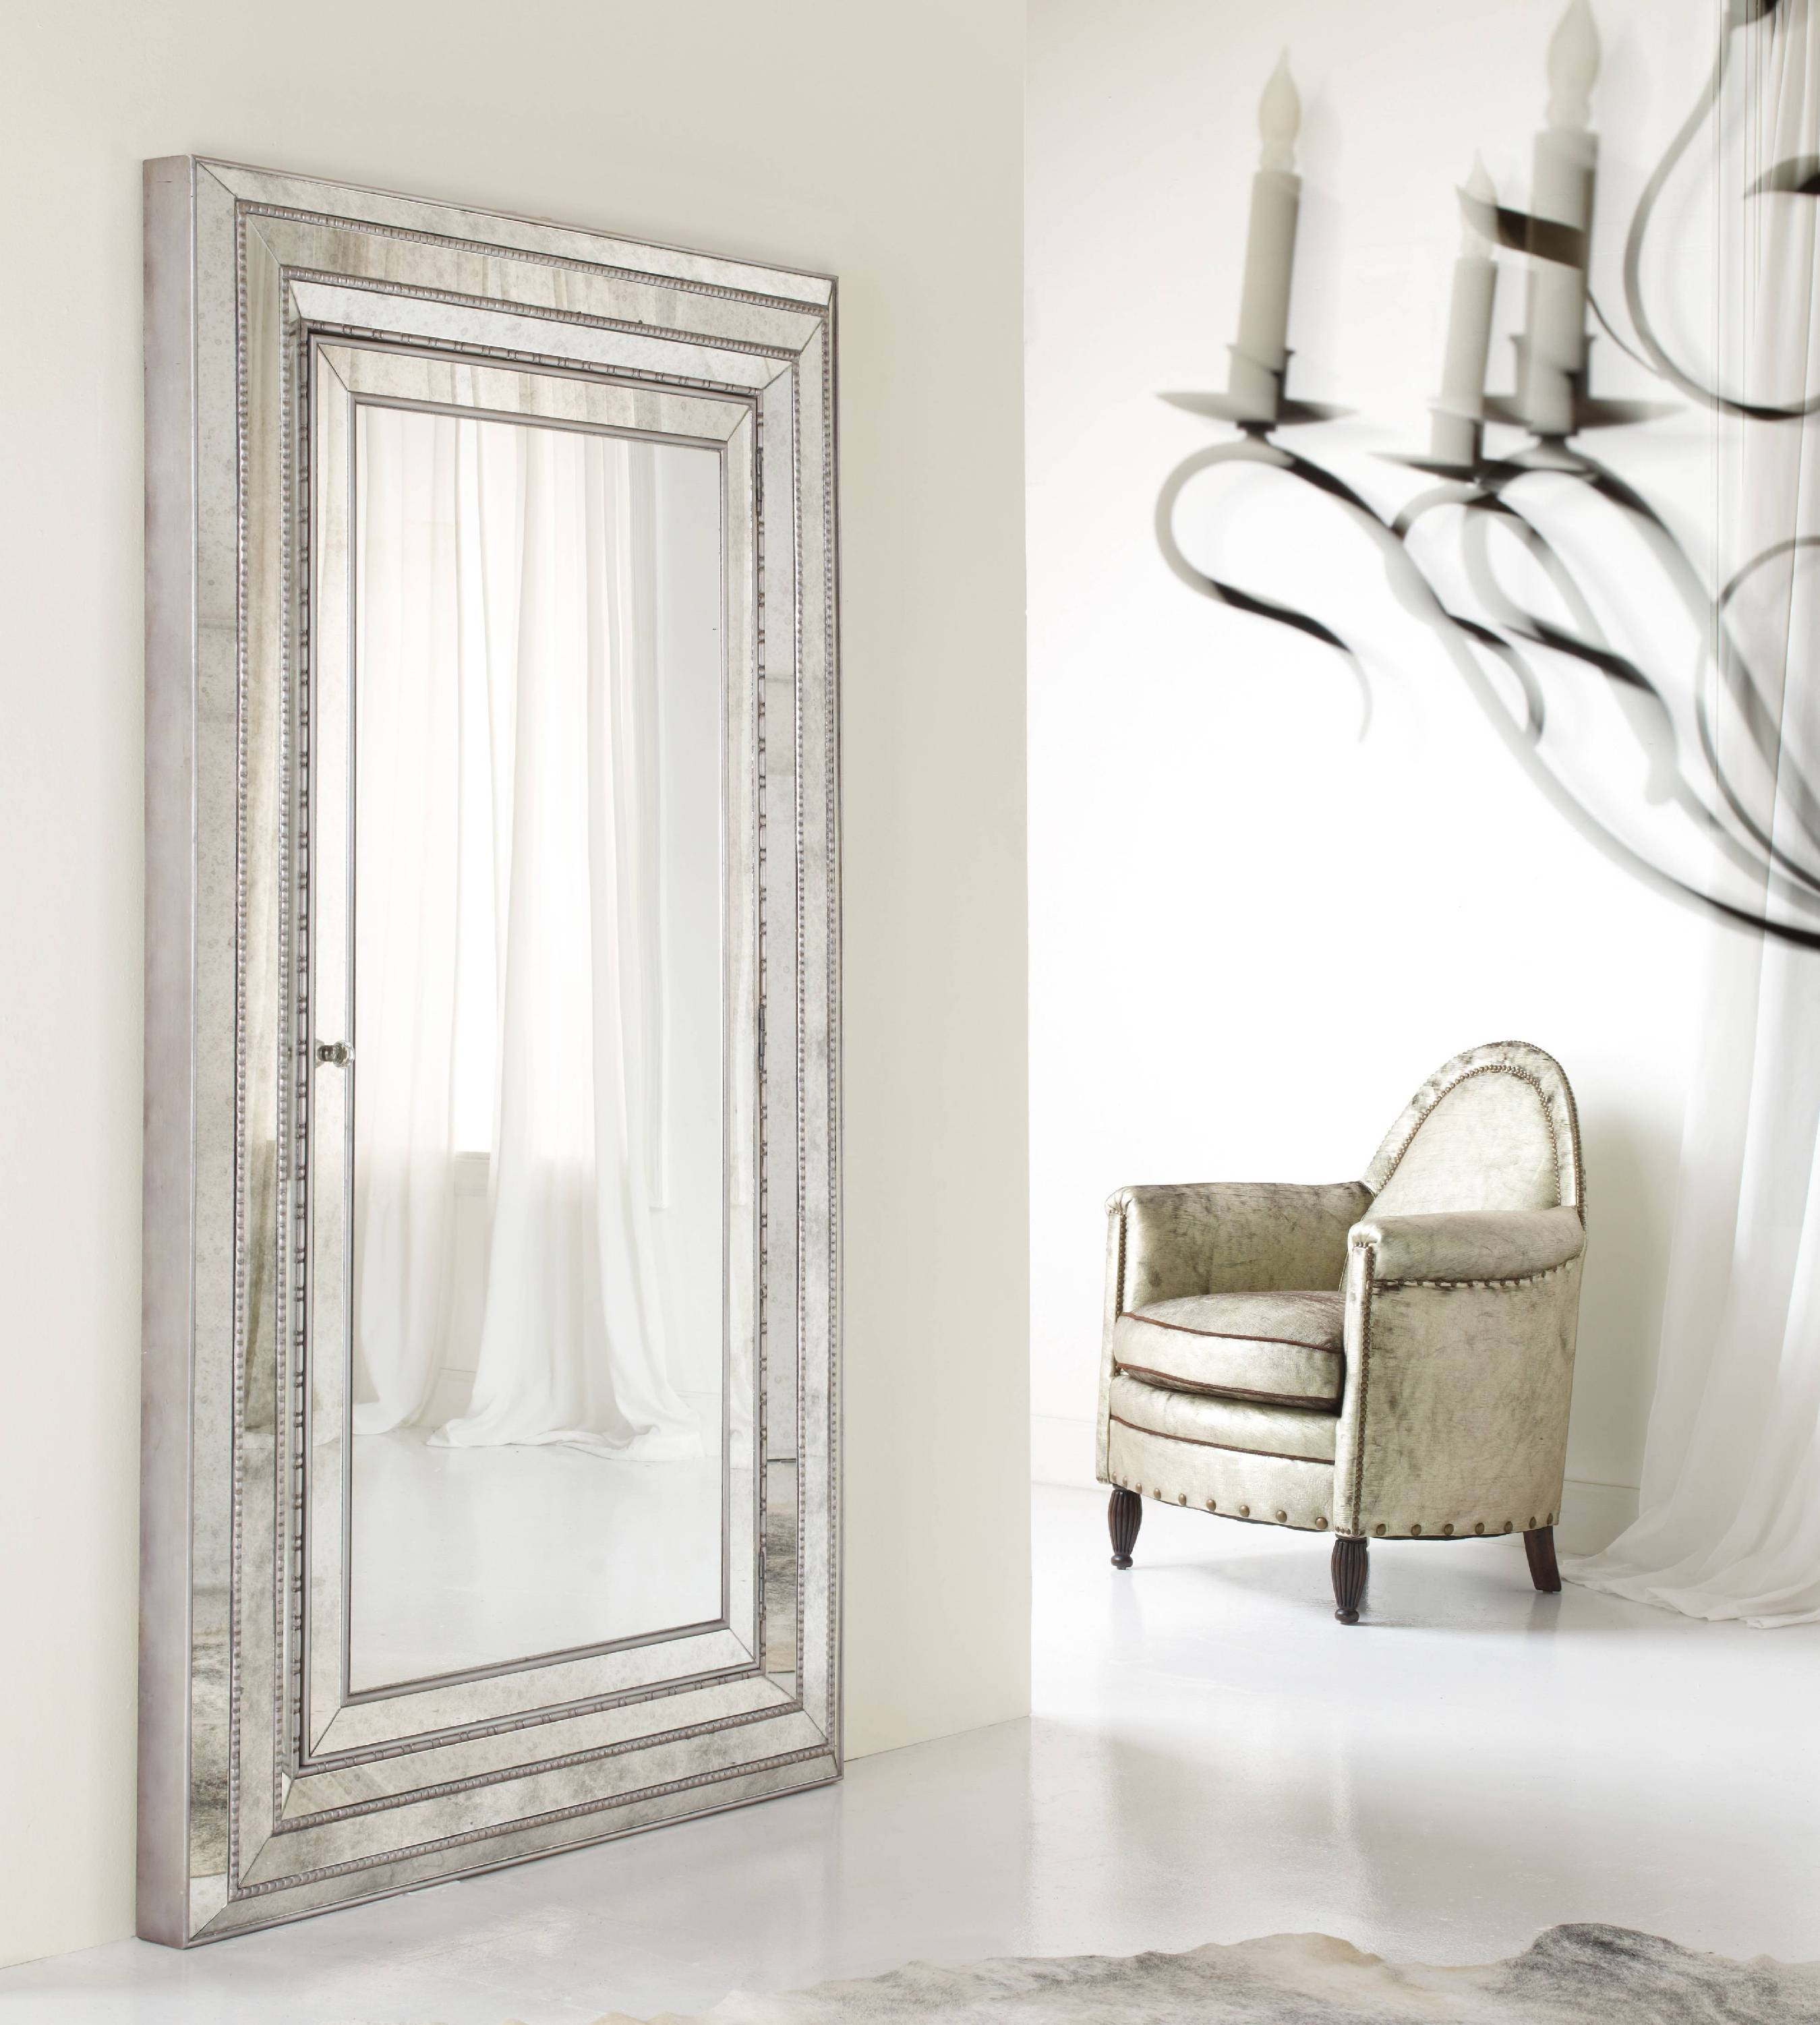 Stupendous Full Length Mirror Jewelry Cabinet White 76 Full Length regarding Silver Full Length Mirrors (Image 13 of 15)